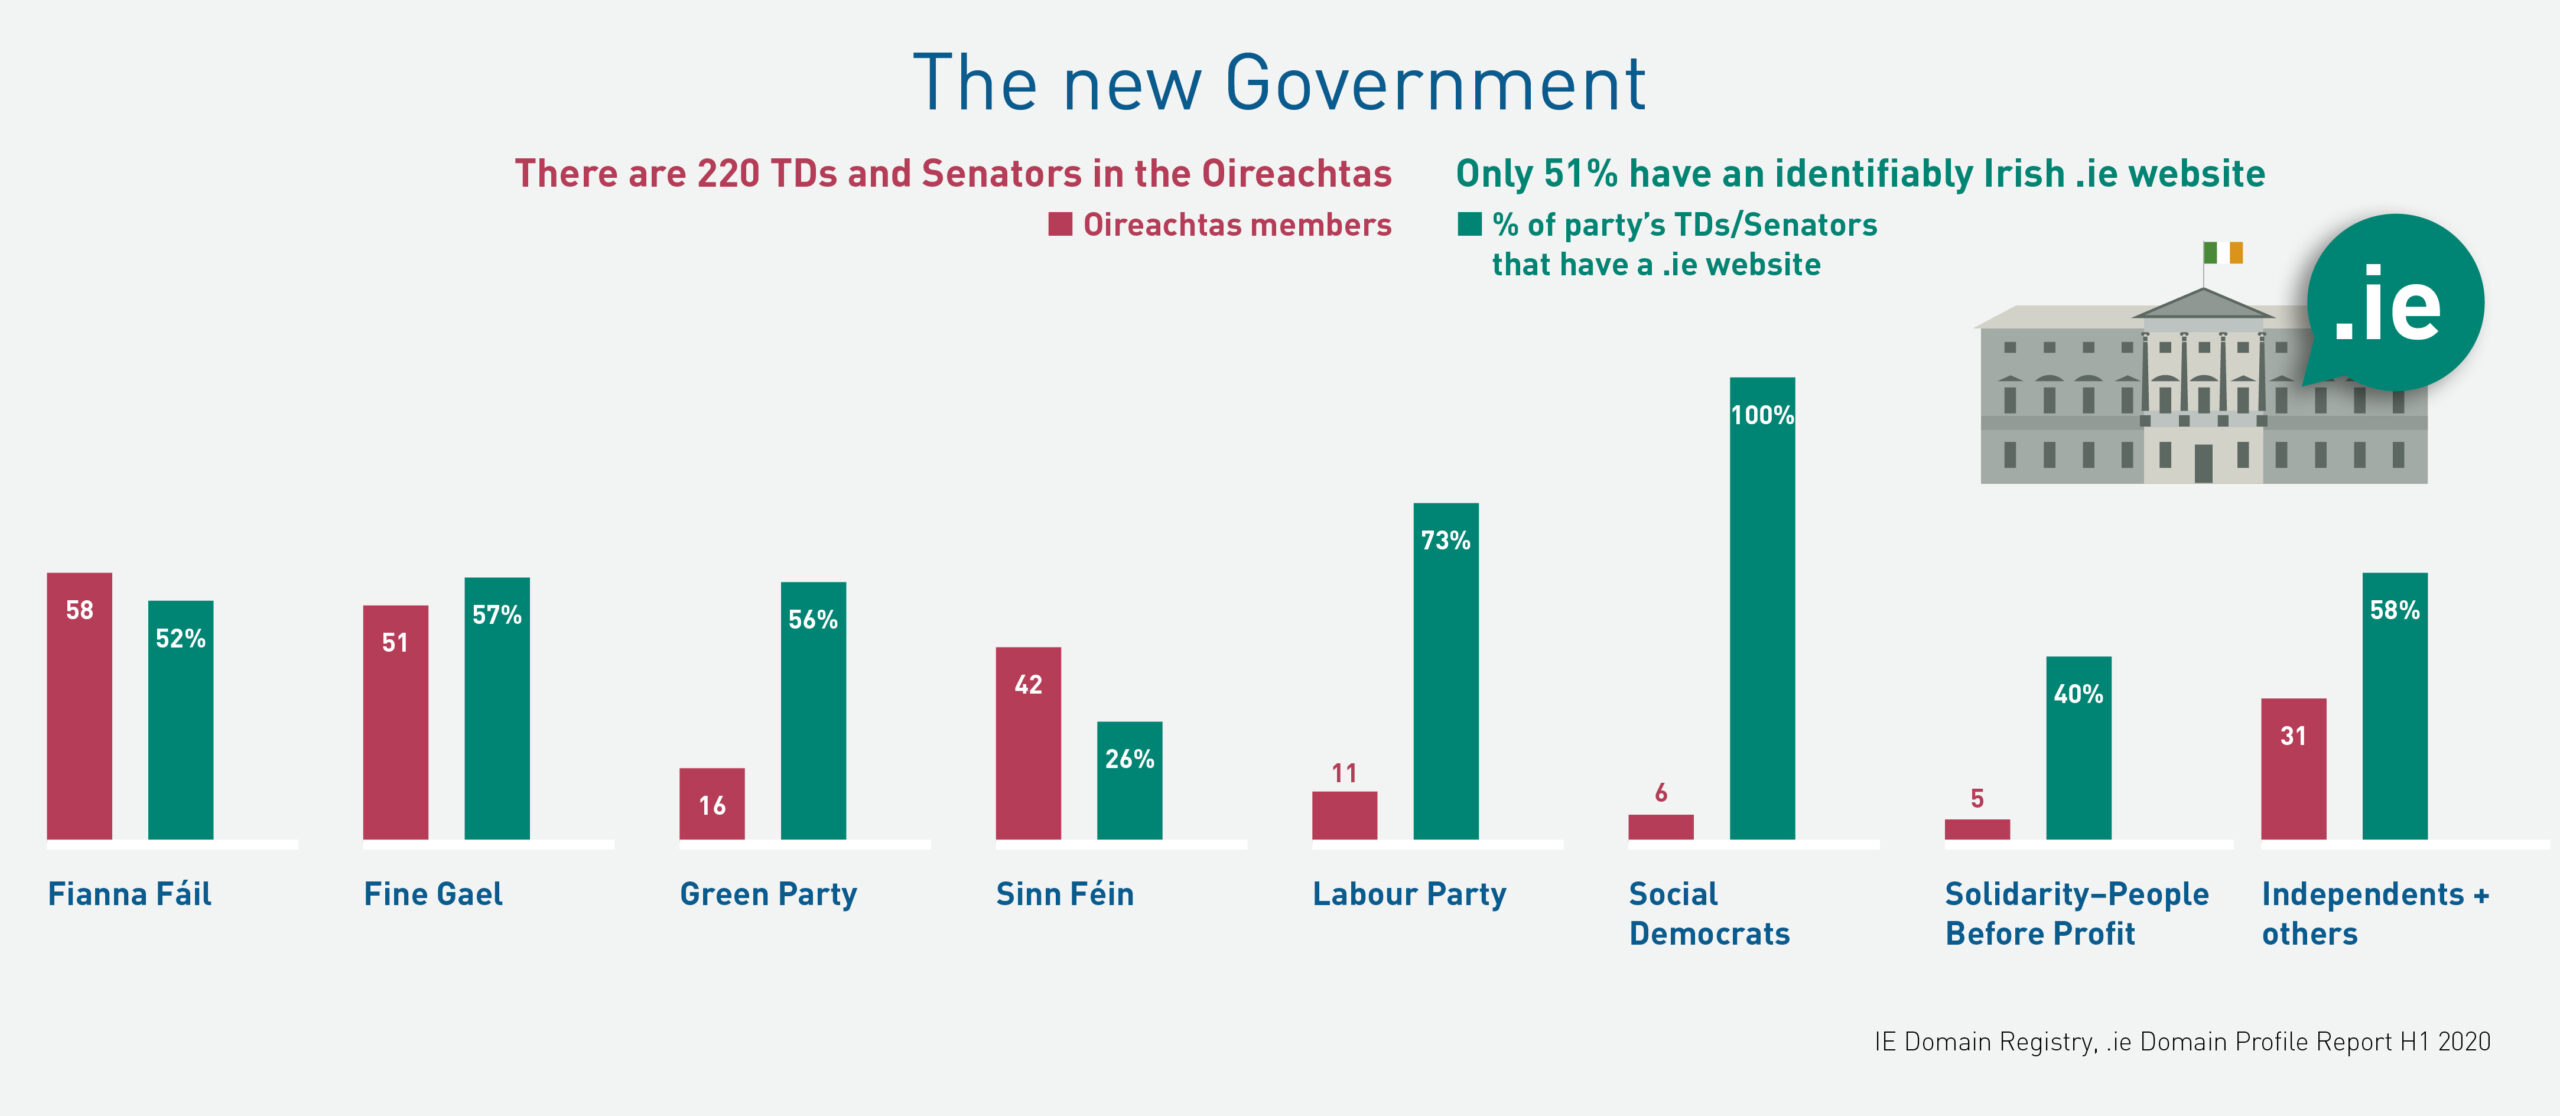 Only 51% of Oireachtas members have a .ie website